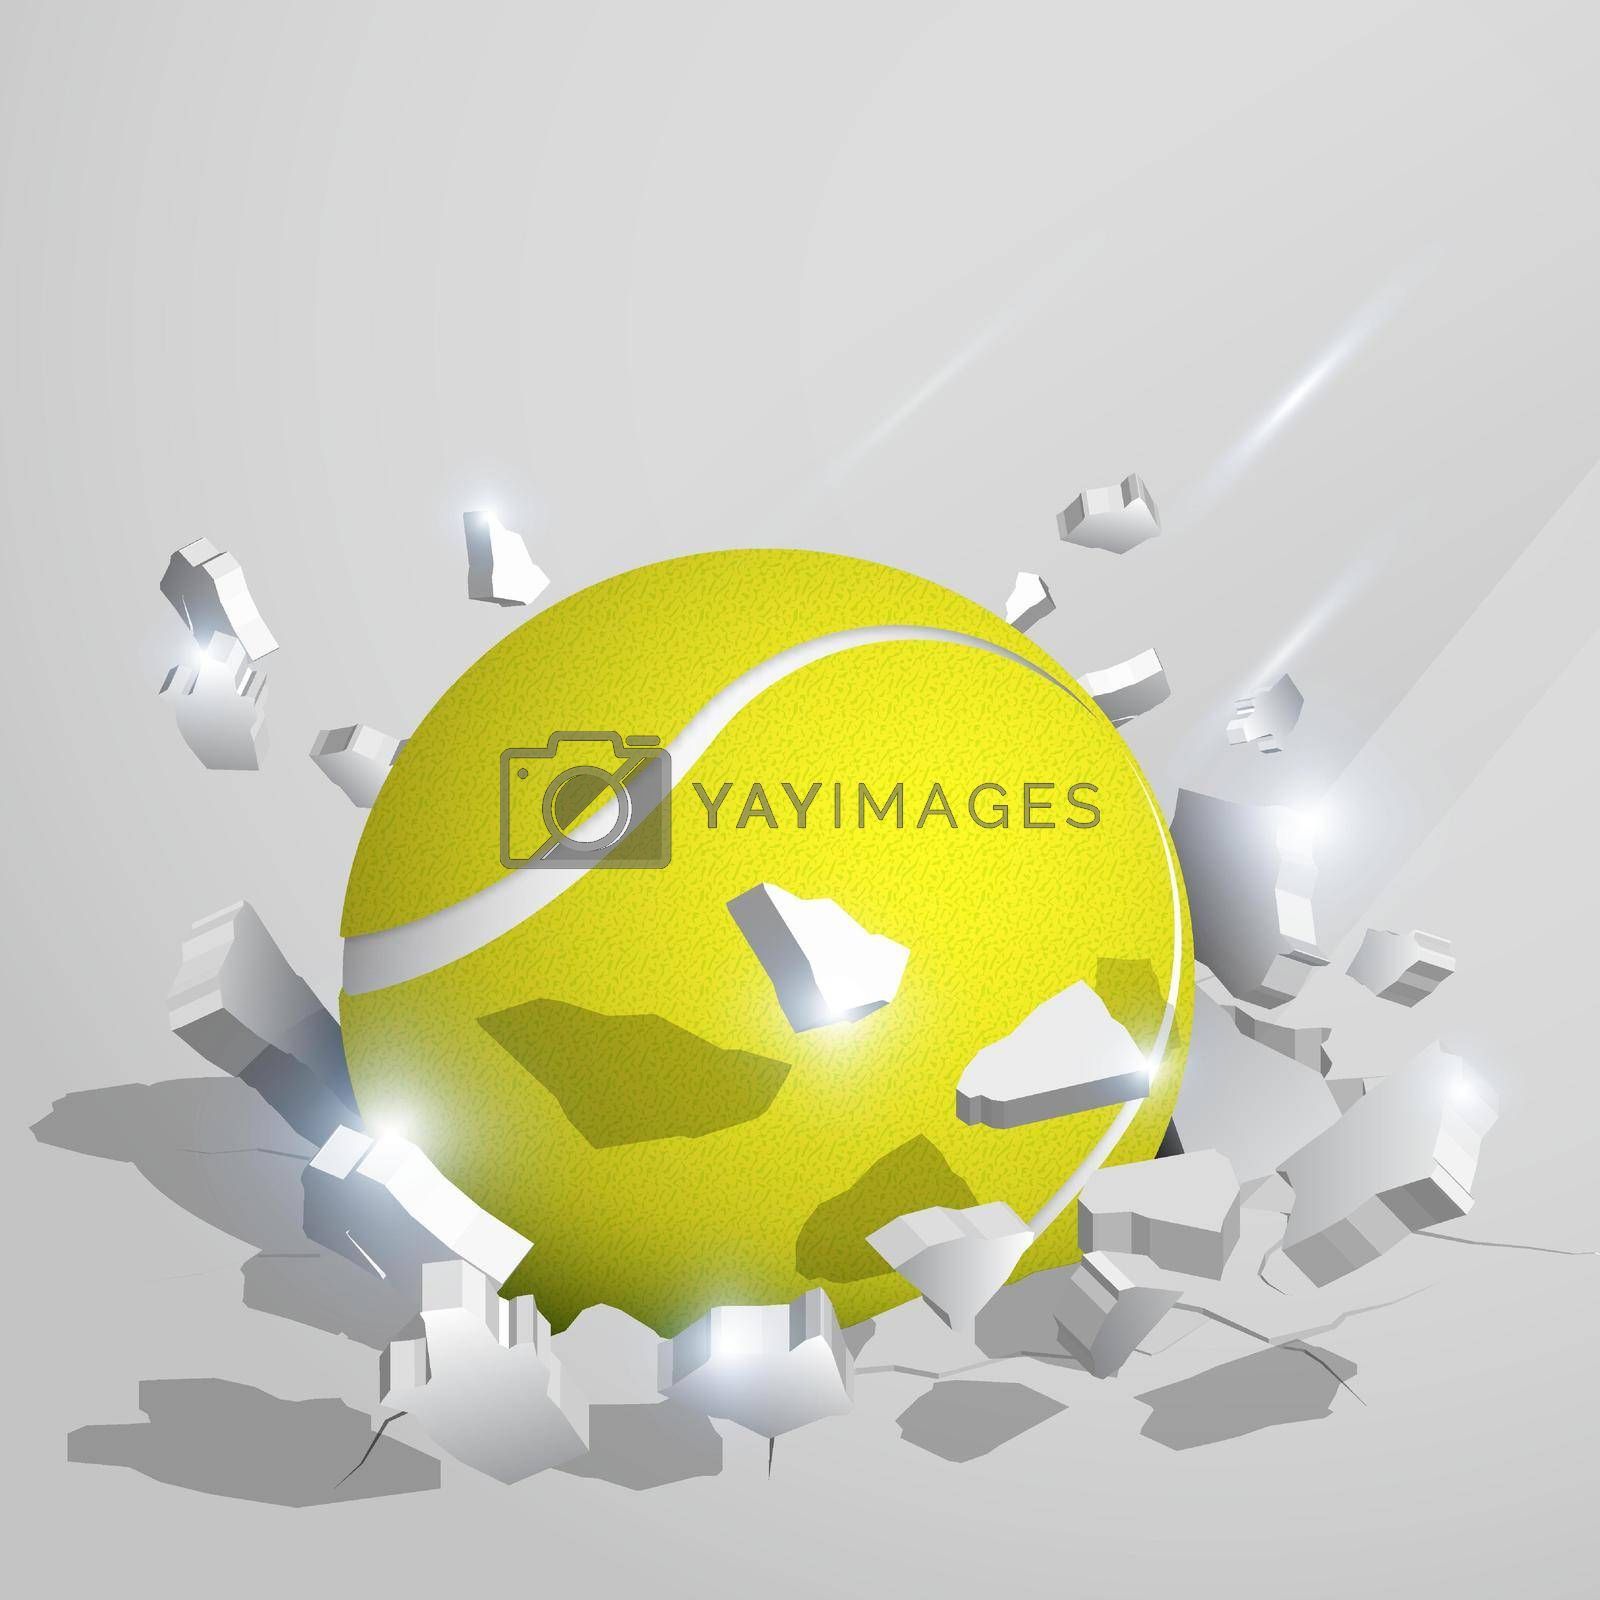 sport tennis ball crashed into the ground at high speed and breaks into shards, cracks. Inflicting heavy damage. Vector